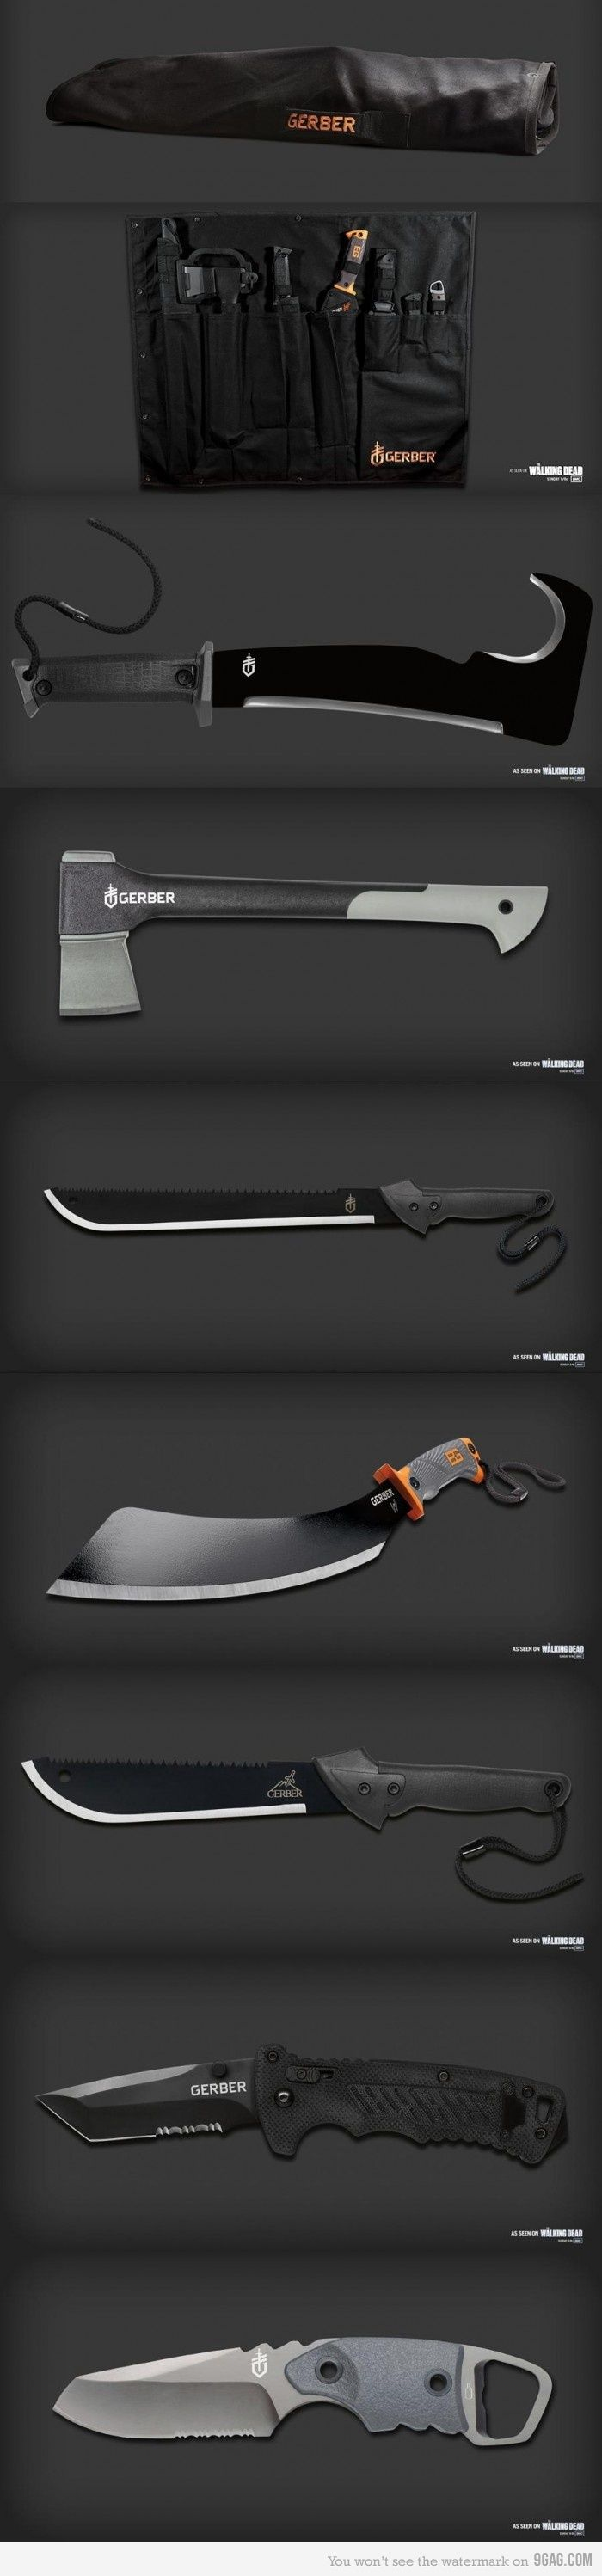 Cool Stuff We Like Here @ CoolPile.com ------- << Original Comment >> ------- Knives and axes Basic Gear